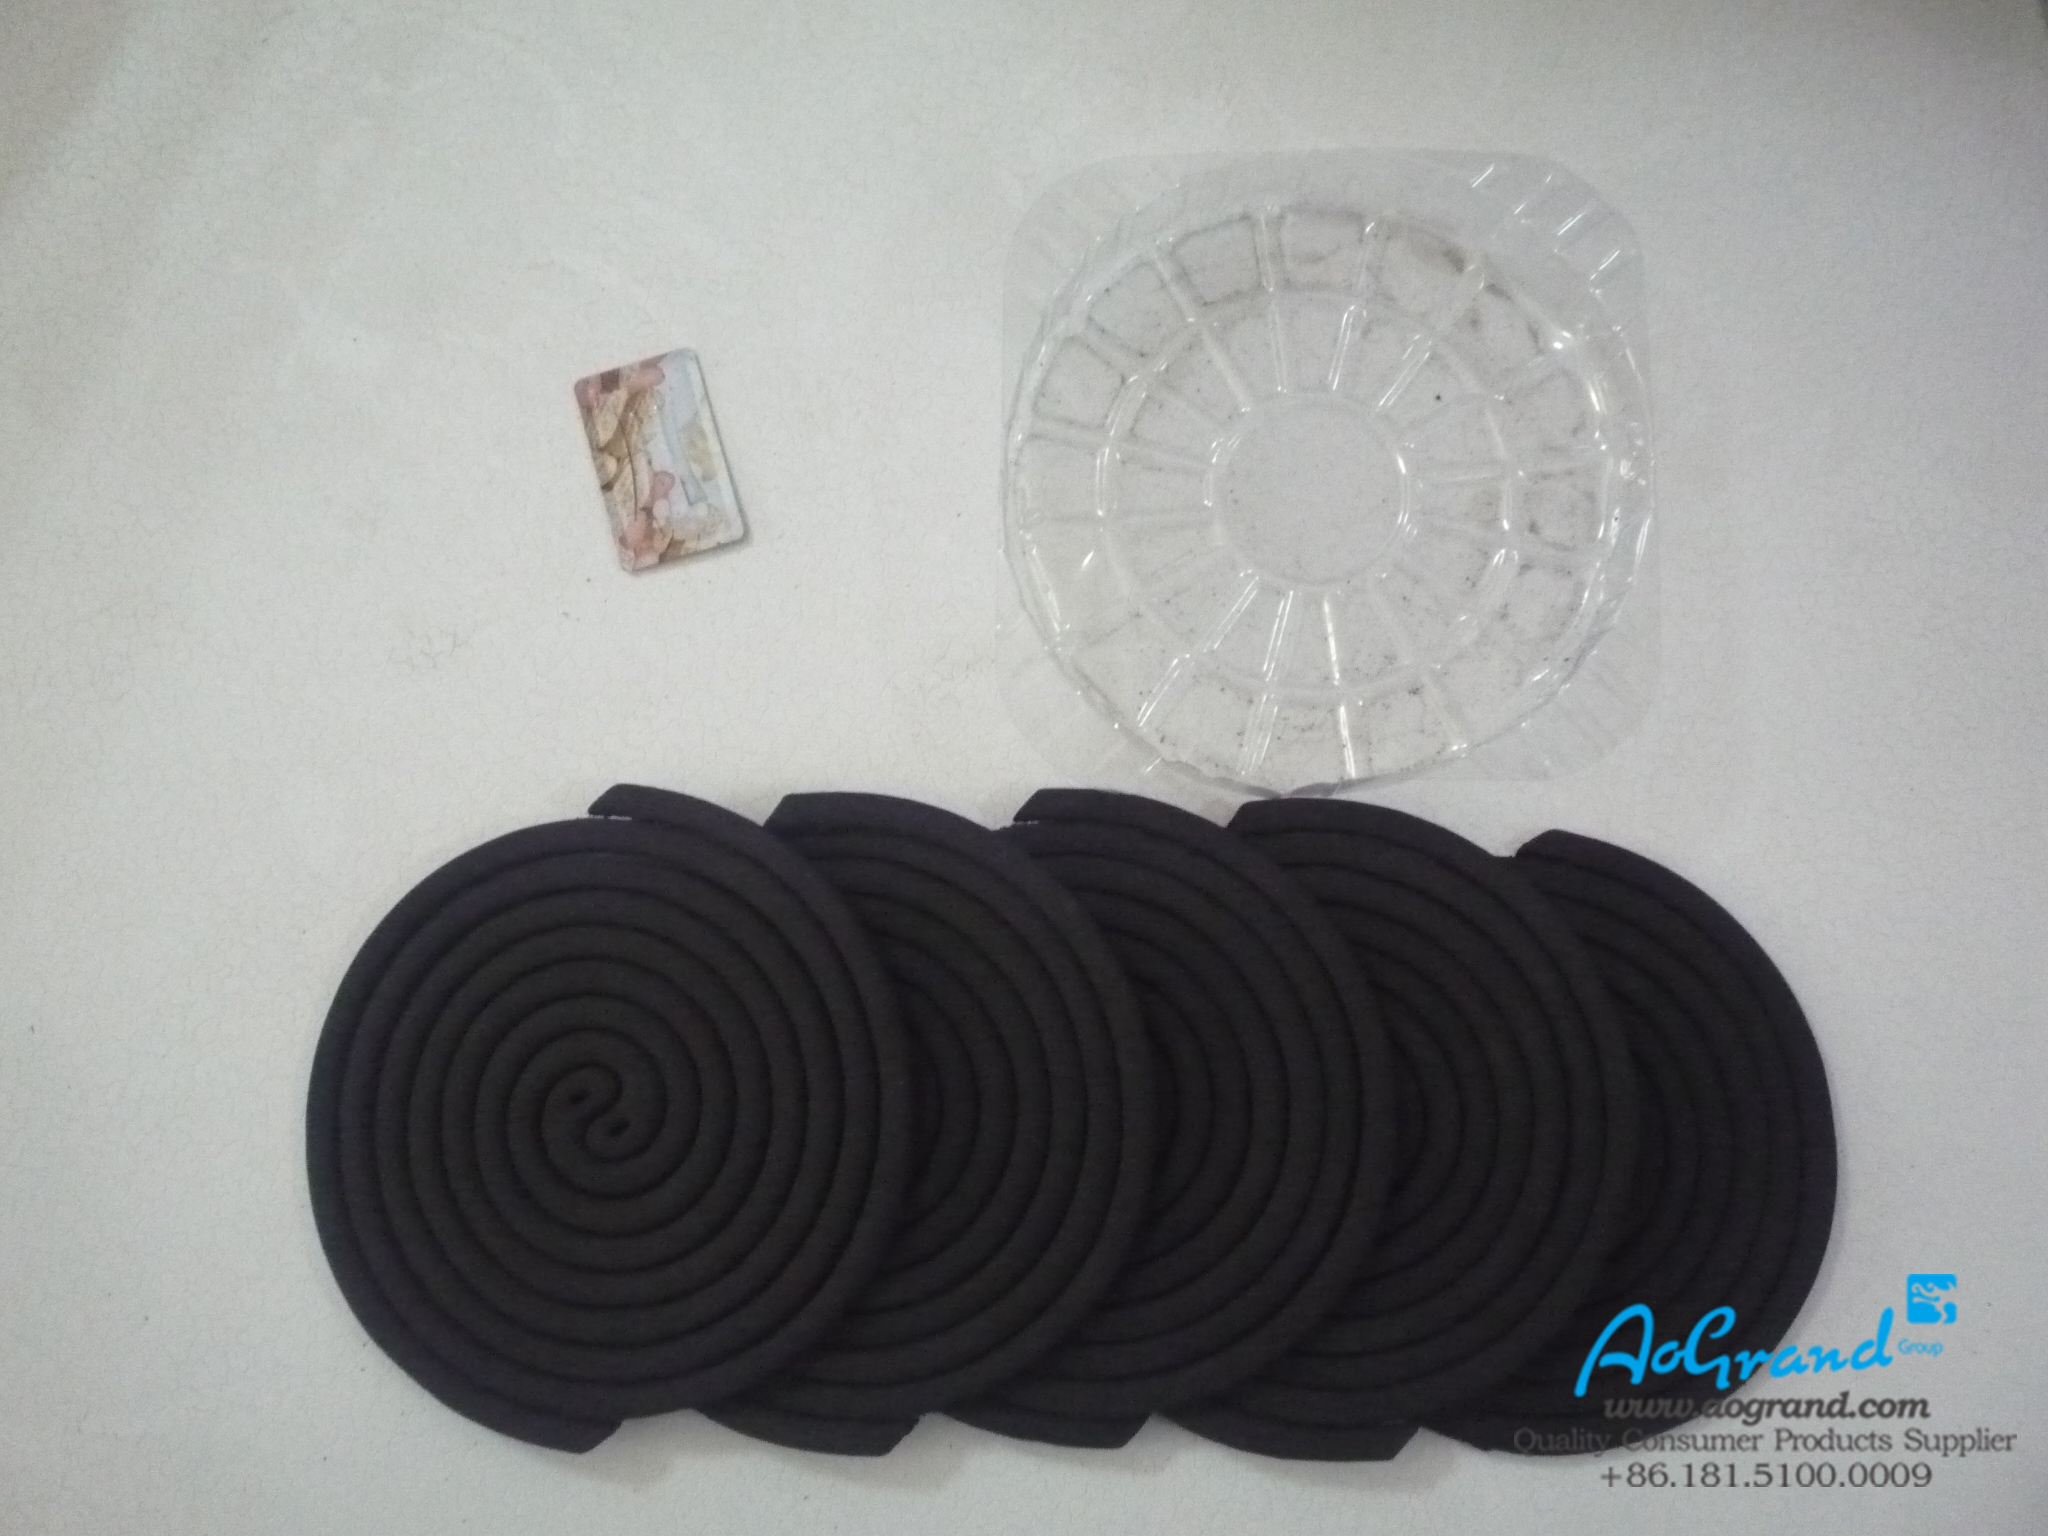 Qualified Mosquito Coils Can Be Helpful for Anti-mosquito